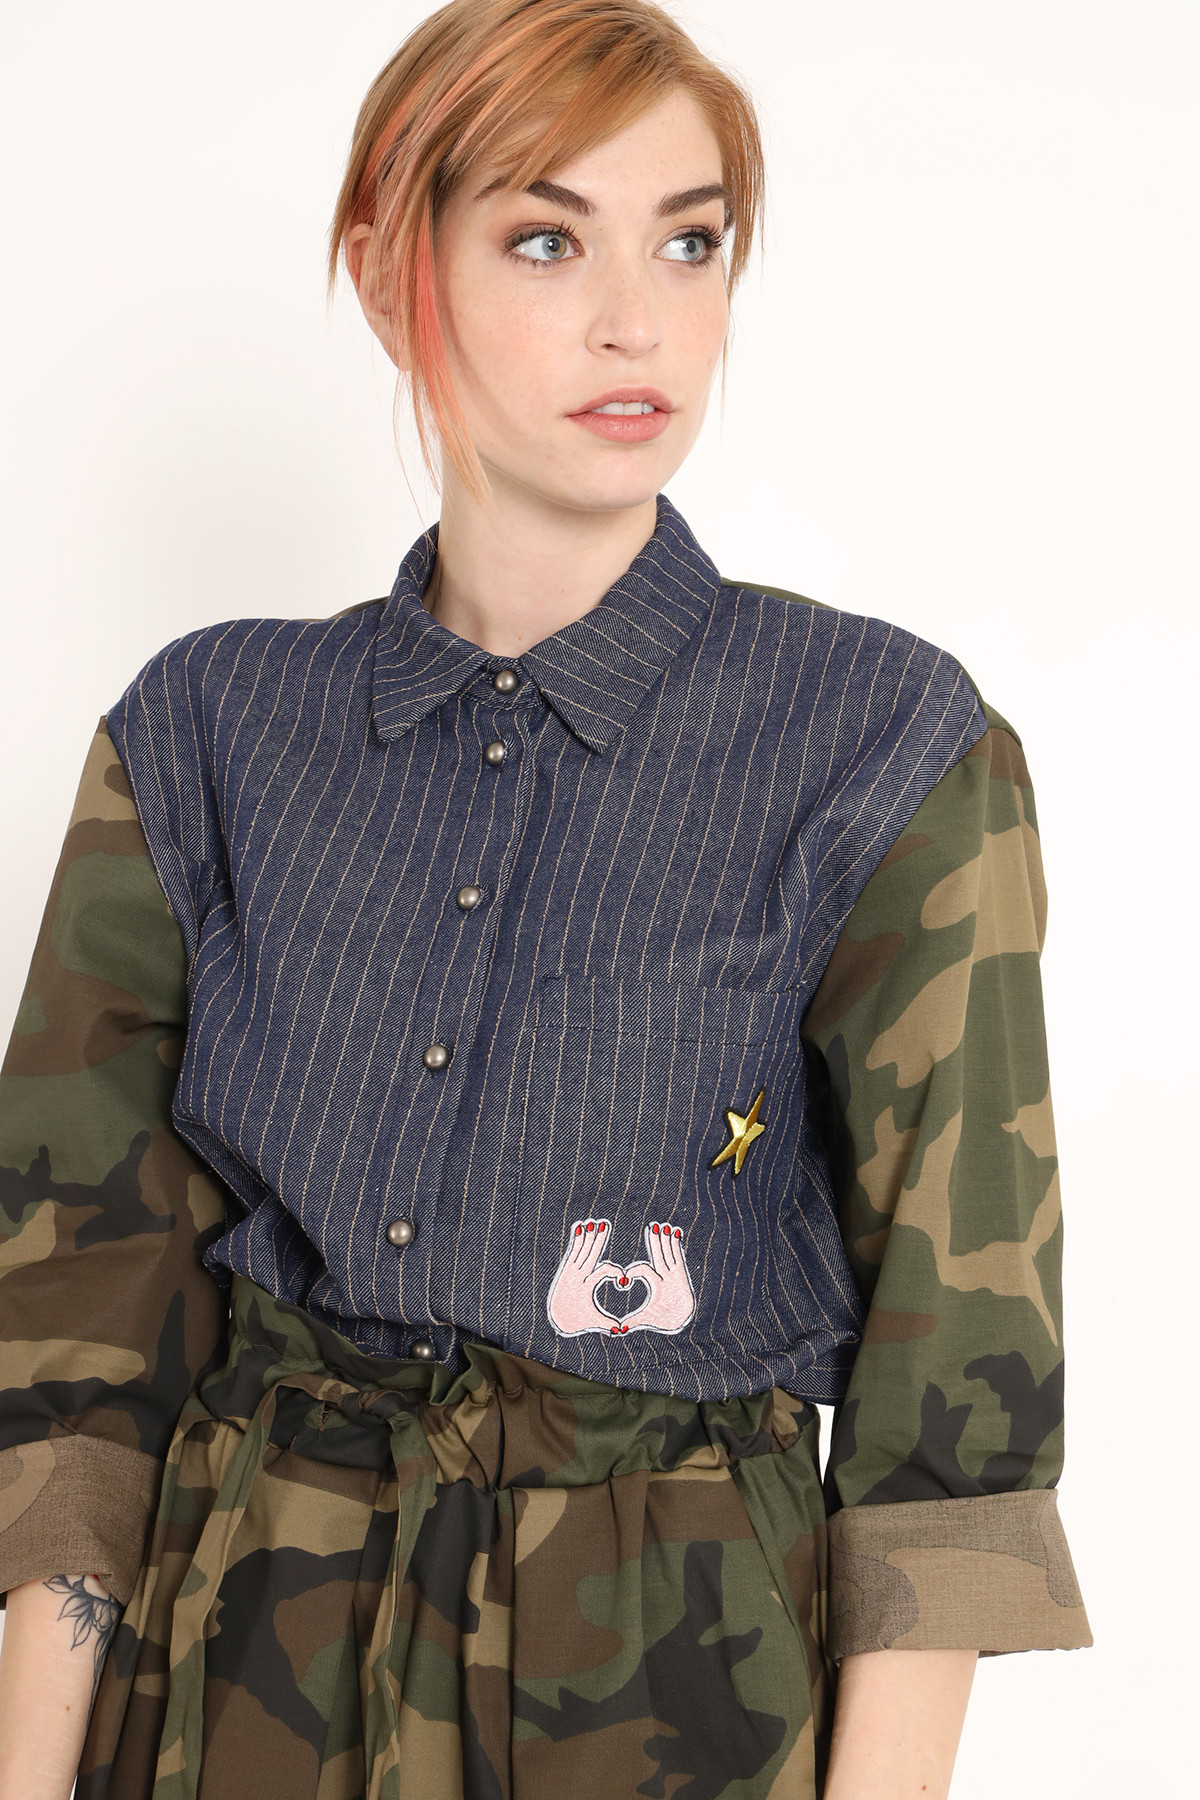 Pinstripe Denim Shirt with Camouflage Sleeves